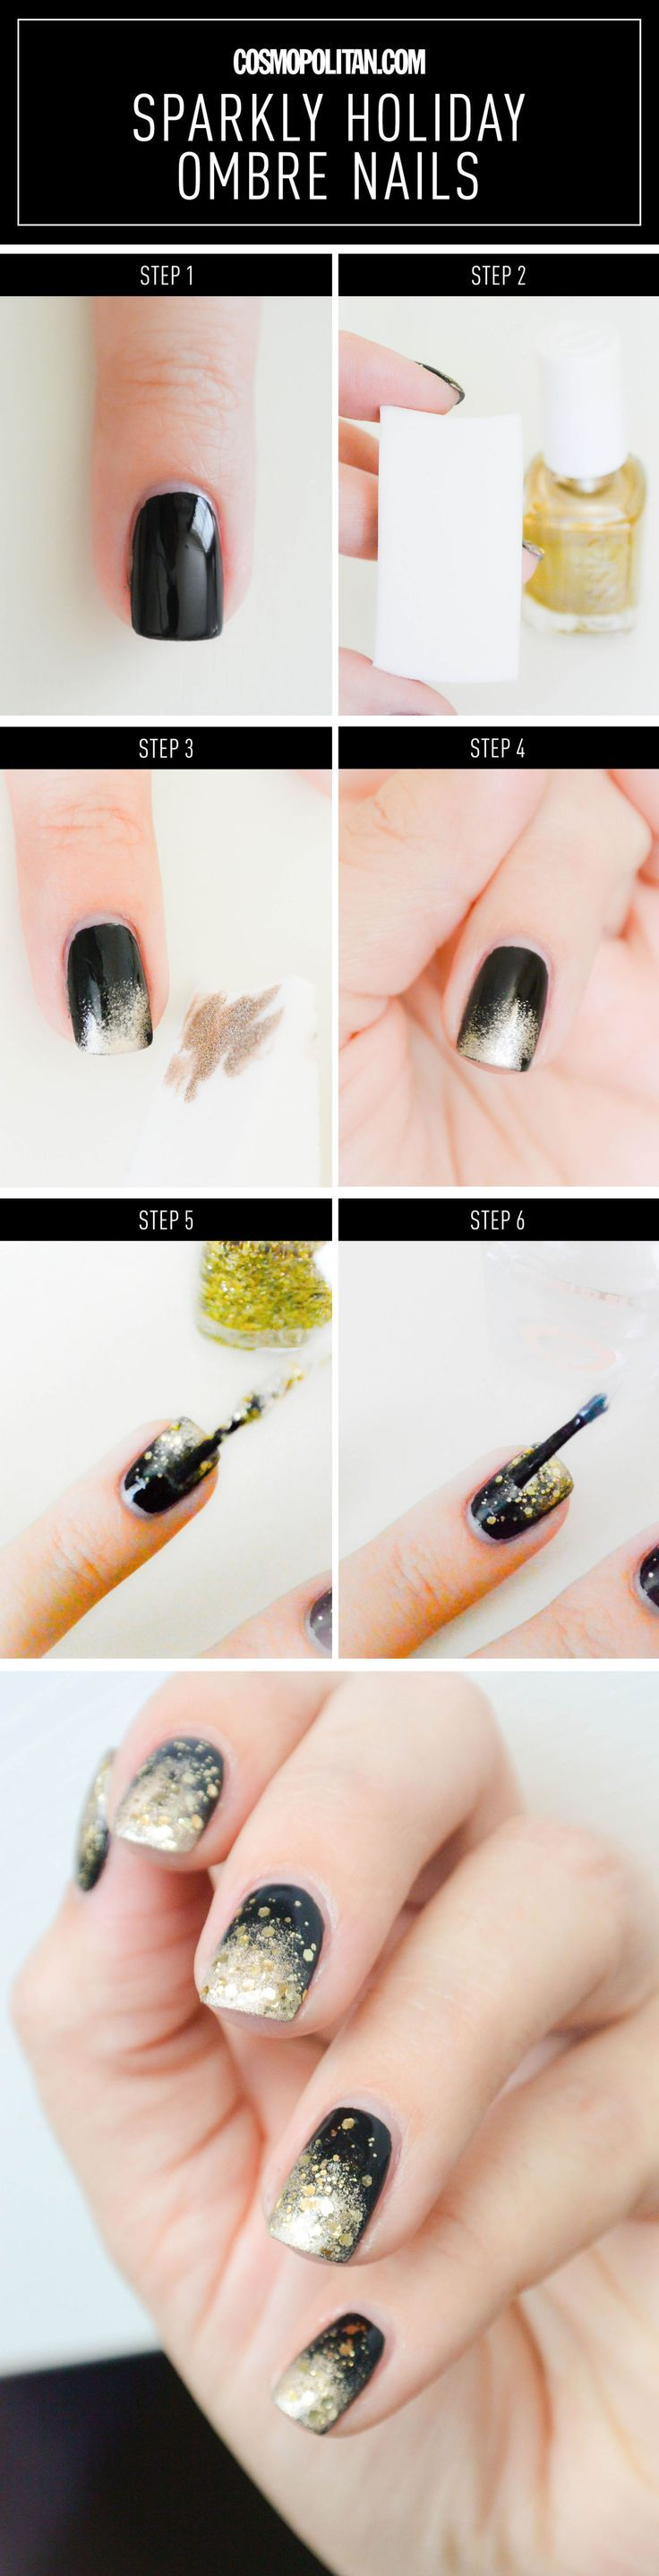 SPARKLY HOLIDAY OMBRE NAIL ART: Usher 2016 in with style with this holiday black and gold ombre mani. This glam look is perfect for New Year's Eve parties and any holiday celebration. This mani is so easy — start with nails painted with black polish and then use a makeup sponge to lightly apply gold polish to create an ombre look. Then add a layer of glitter over the gold polish with a thicker layer towards the end of nail. Click through for the easy tutorial (with the complete direction) an